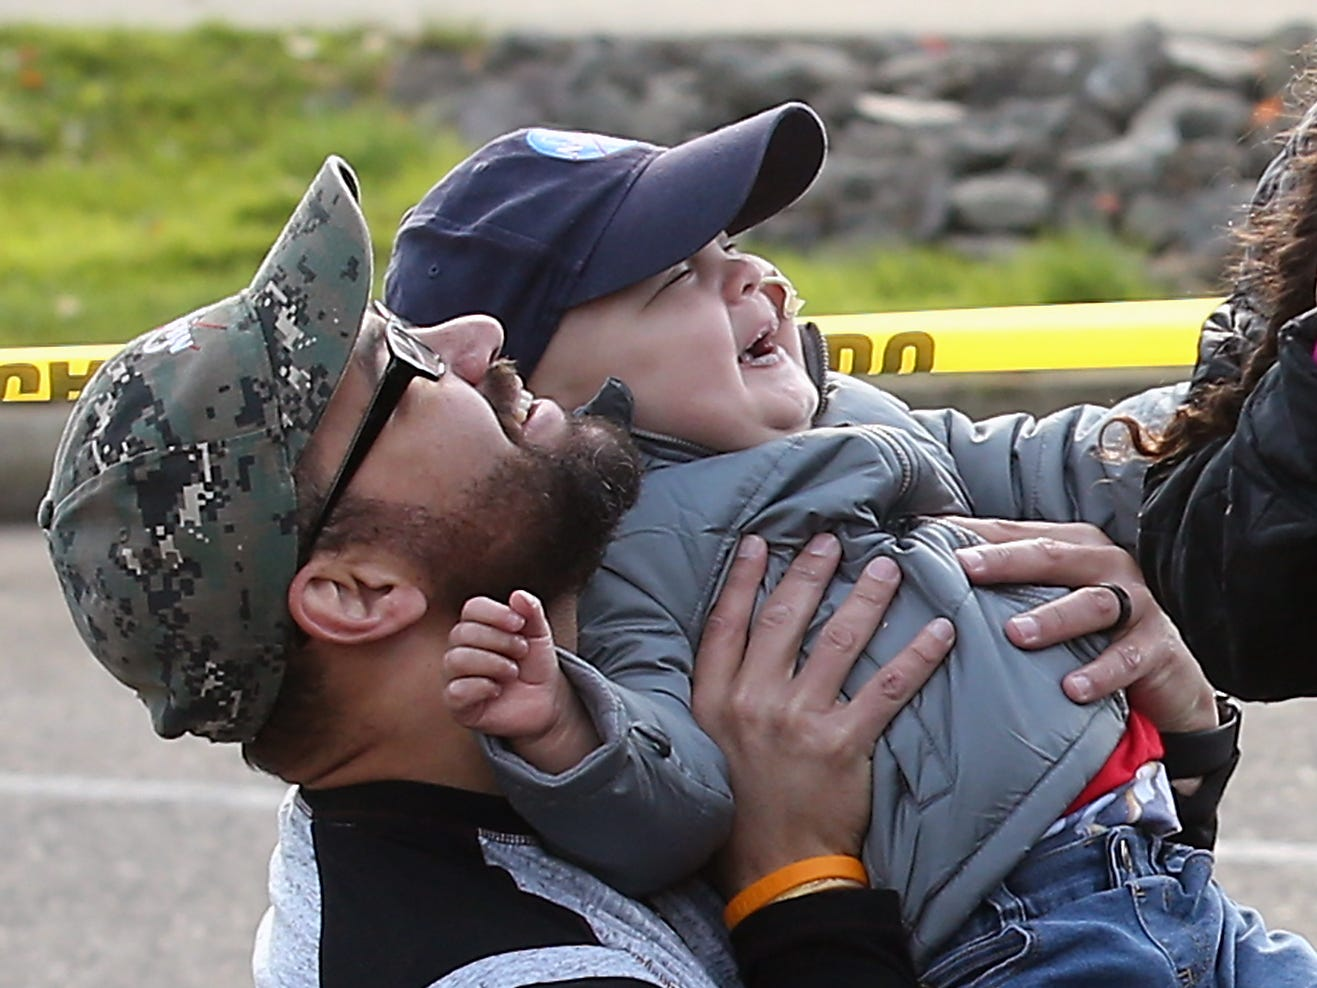 Three-year-old Jedi Minters laughs as his father Jason tips him up to see the Kitsap County Sheriff's Department's drone flying above them during the Jedi's Special Day event at the Port of Bremerton boat launch across from Port Orchard's City Hall on Wednesday, November 7, 2018.